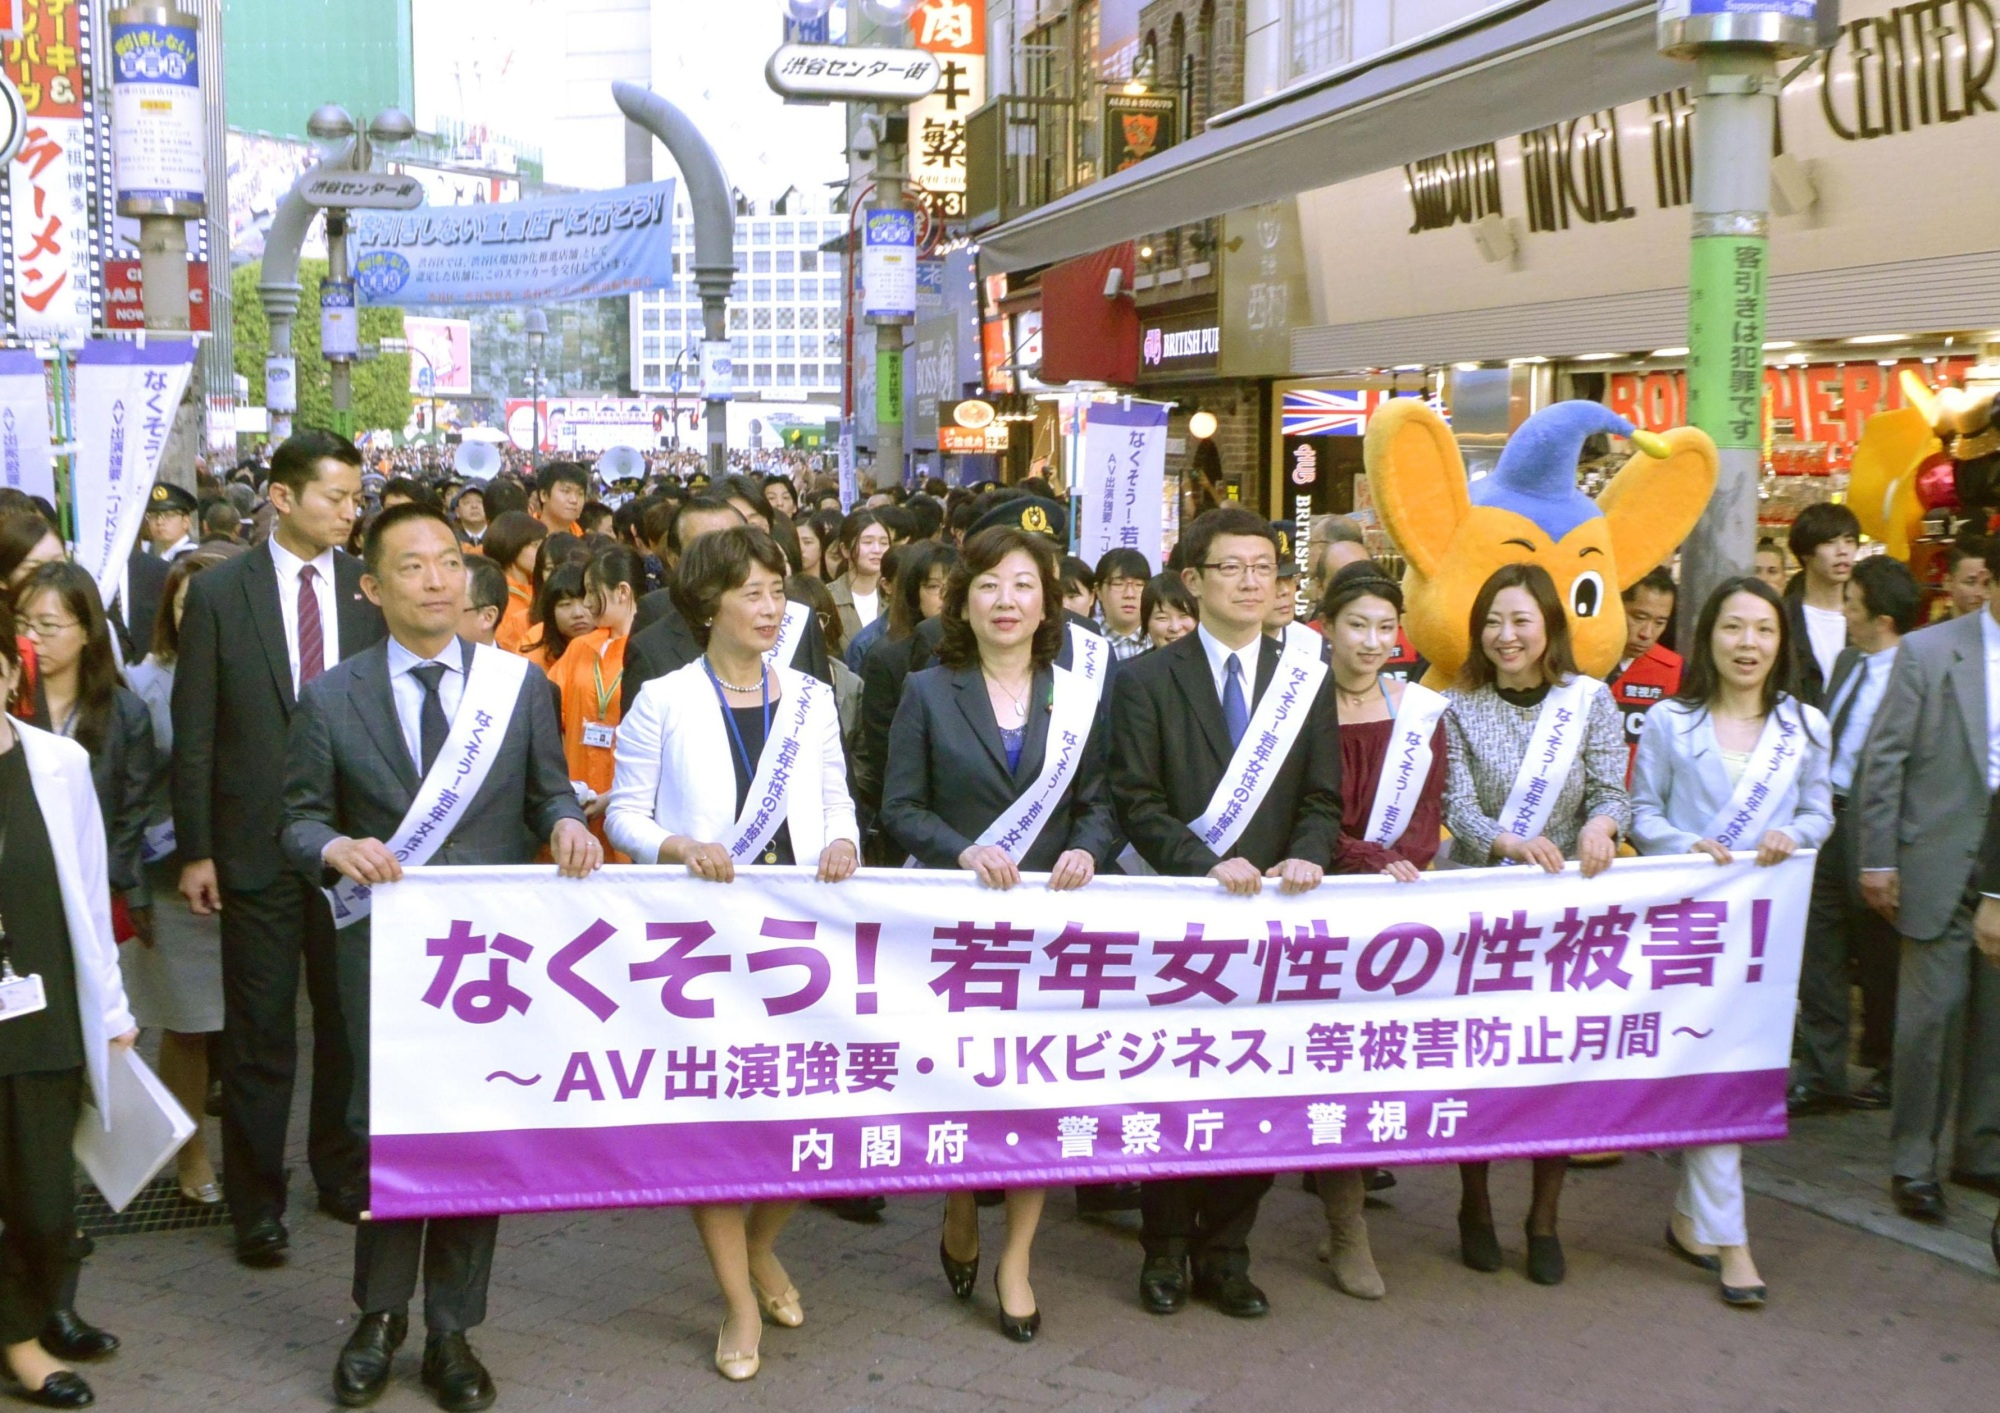 Seiko Noda (center), minister for women's empowerment, marches with senior government officials and police officers along a bustling street in the Shibuya district Friday to call for an end to sex crimes targeting young women. | KYODO